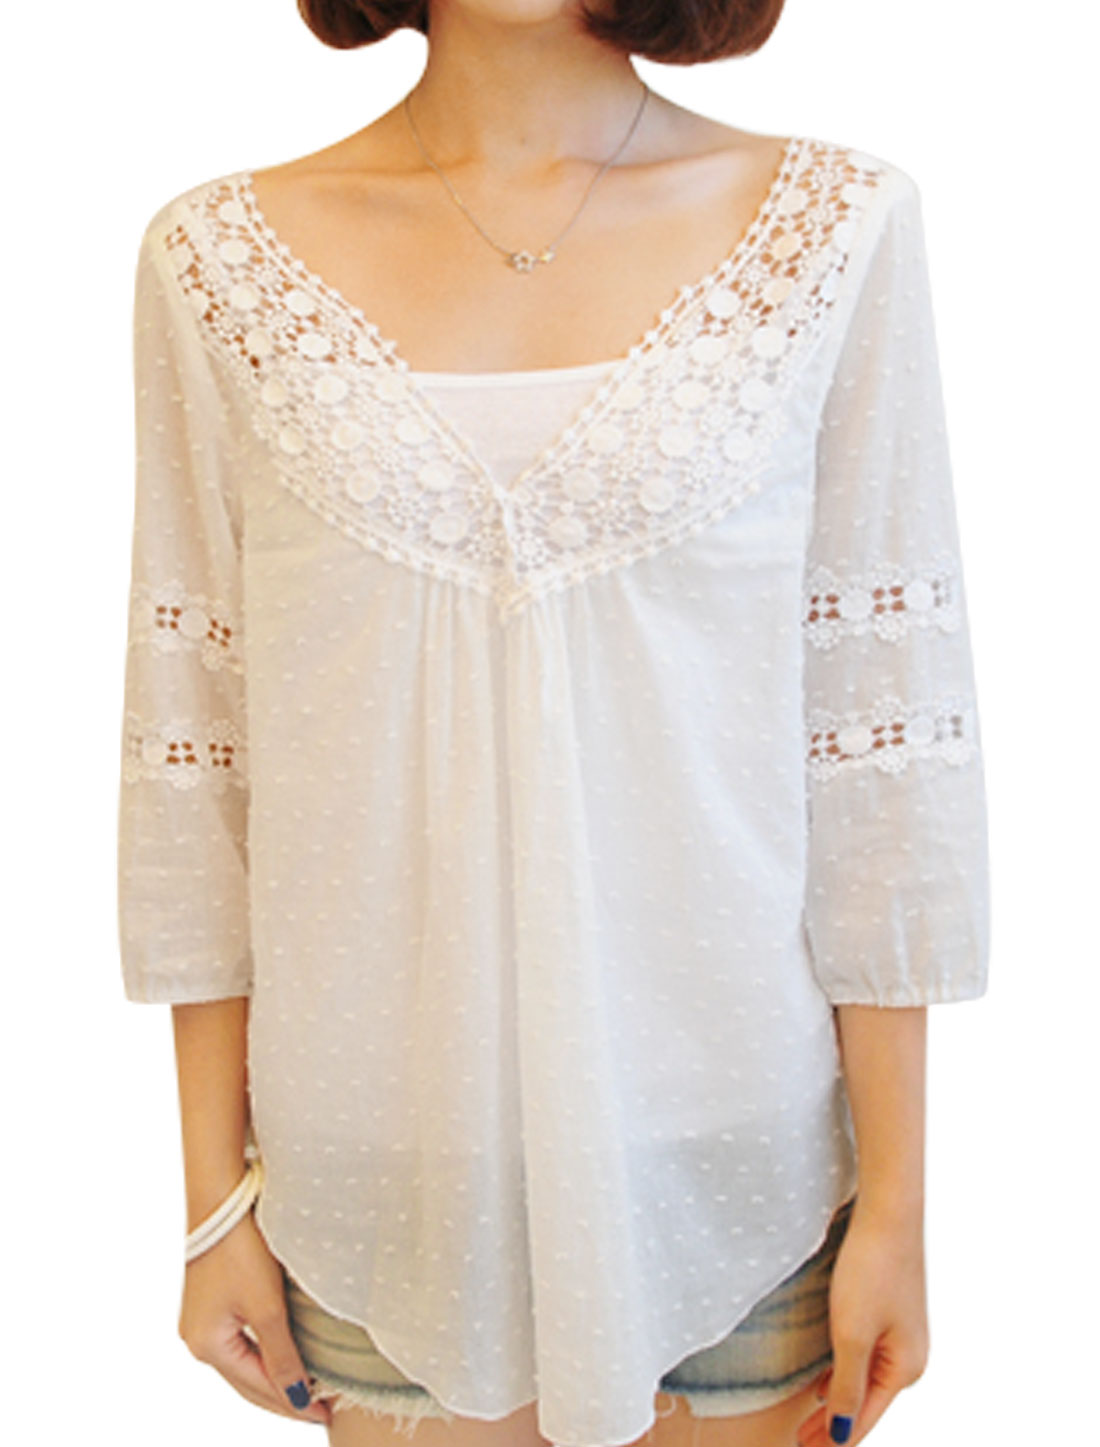 Women Deep V Neck 3/4 Sleeves Semi Sheer Casual Tops White M